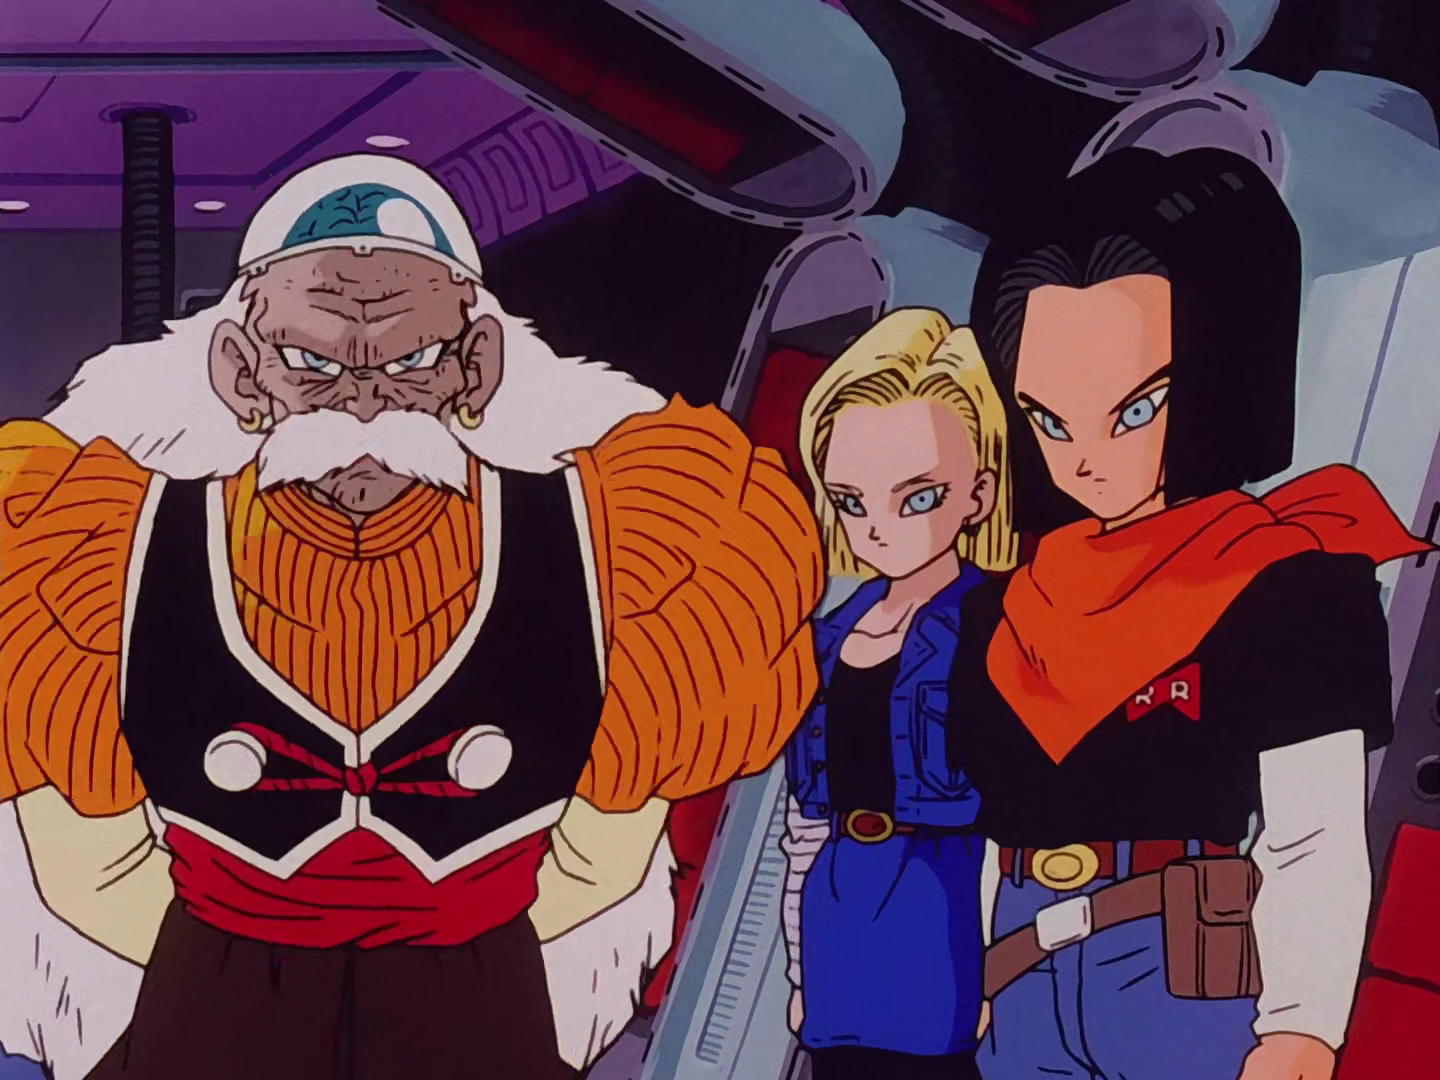 dbz dr gero activates 17 and 18 dating